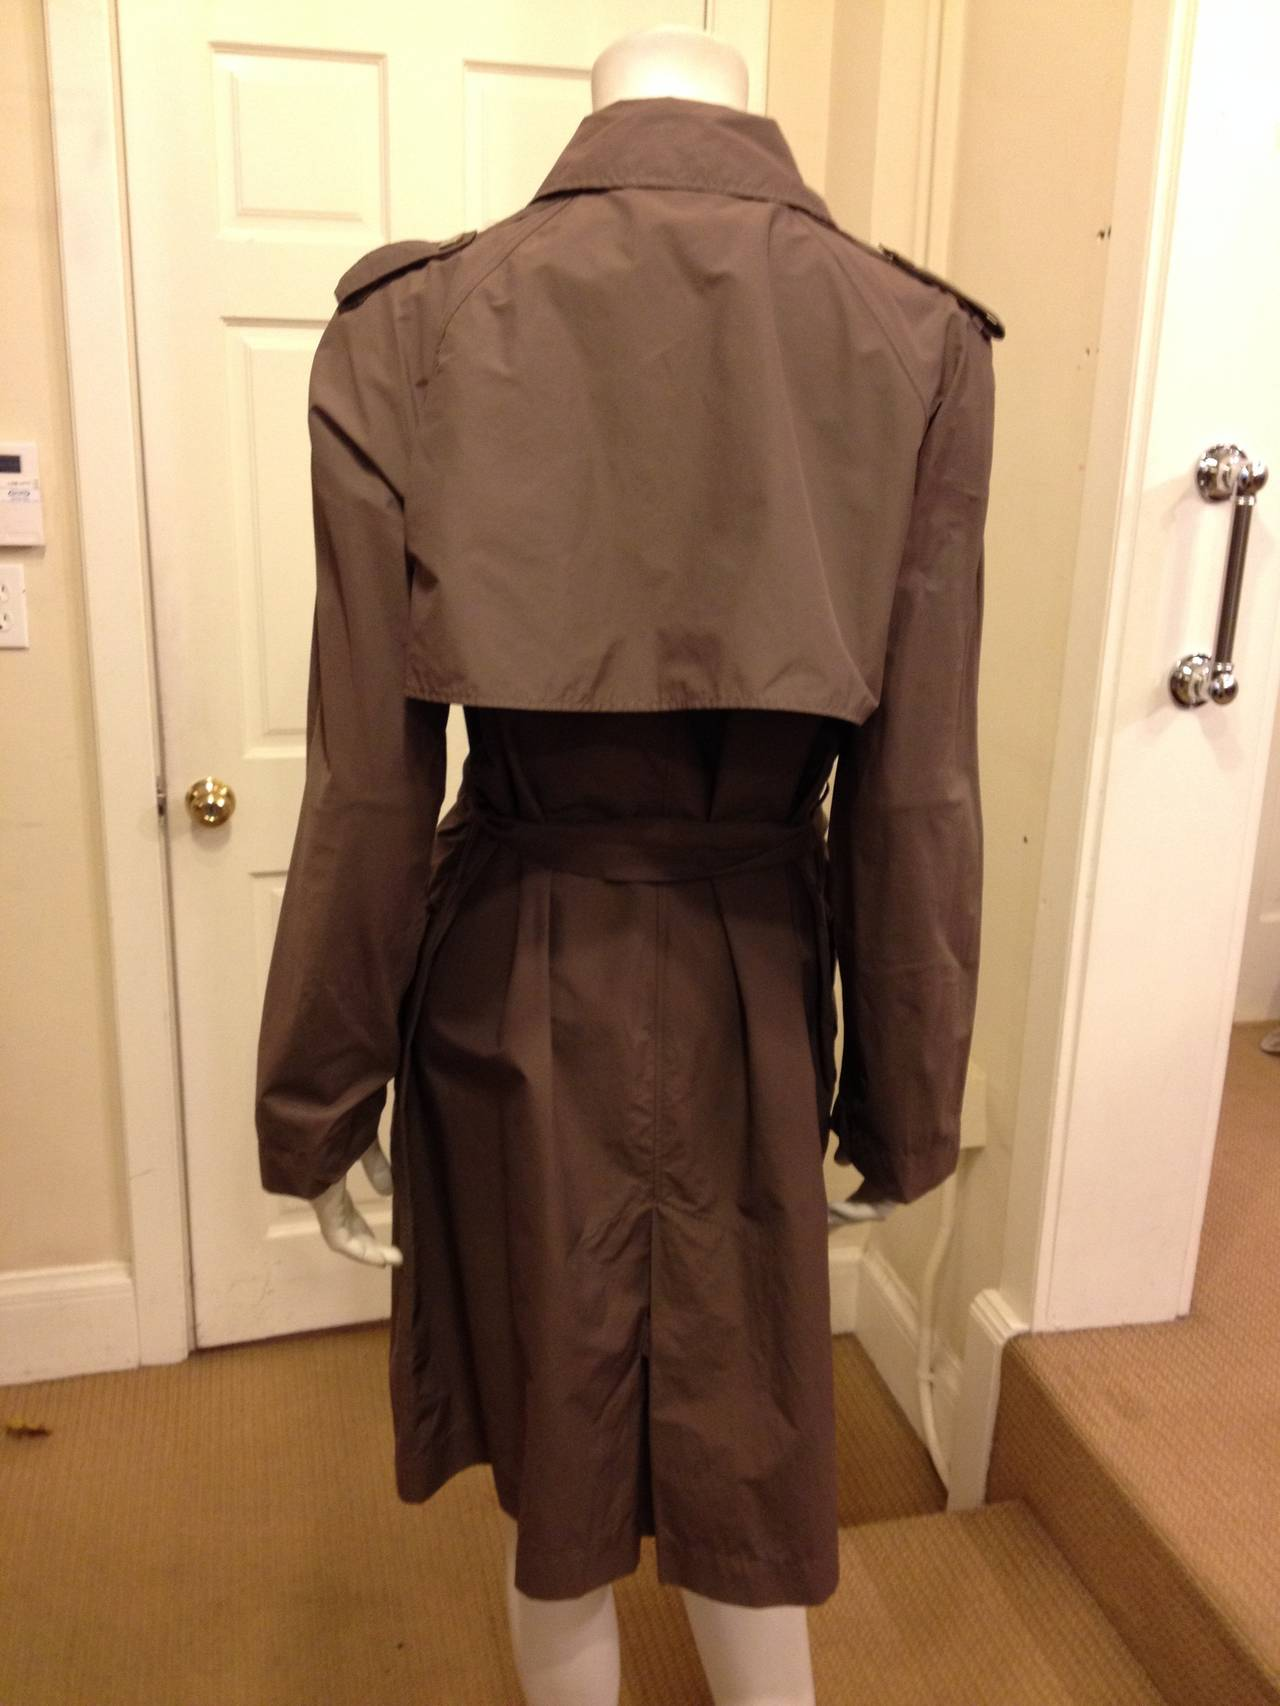 Lanvin Dark Taupe Trenchcoat In Excellent Condition For Sale In San Francisco, CA